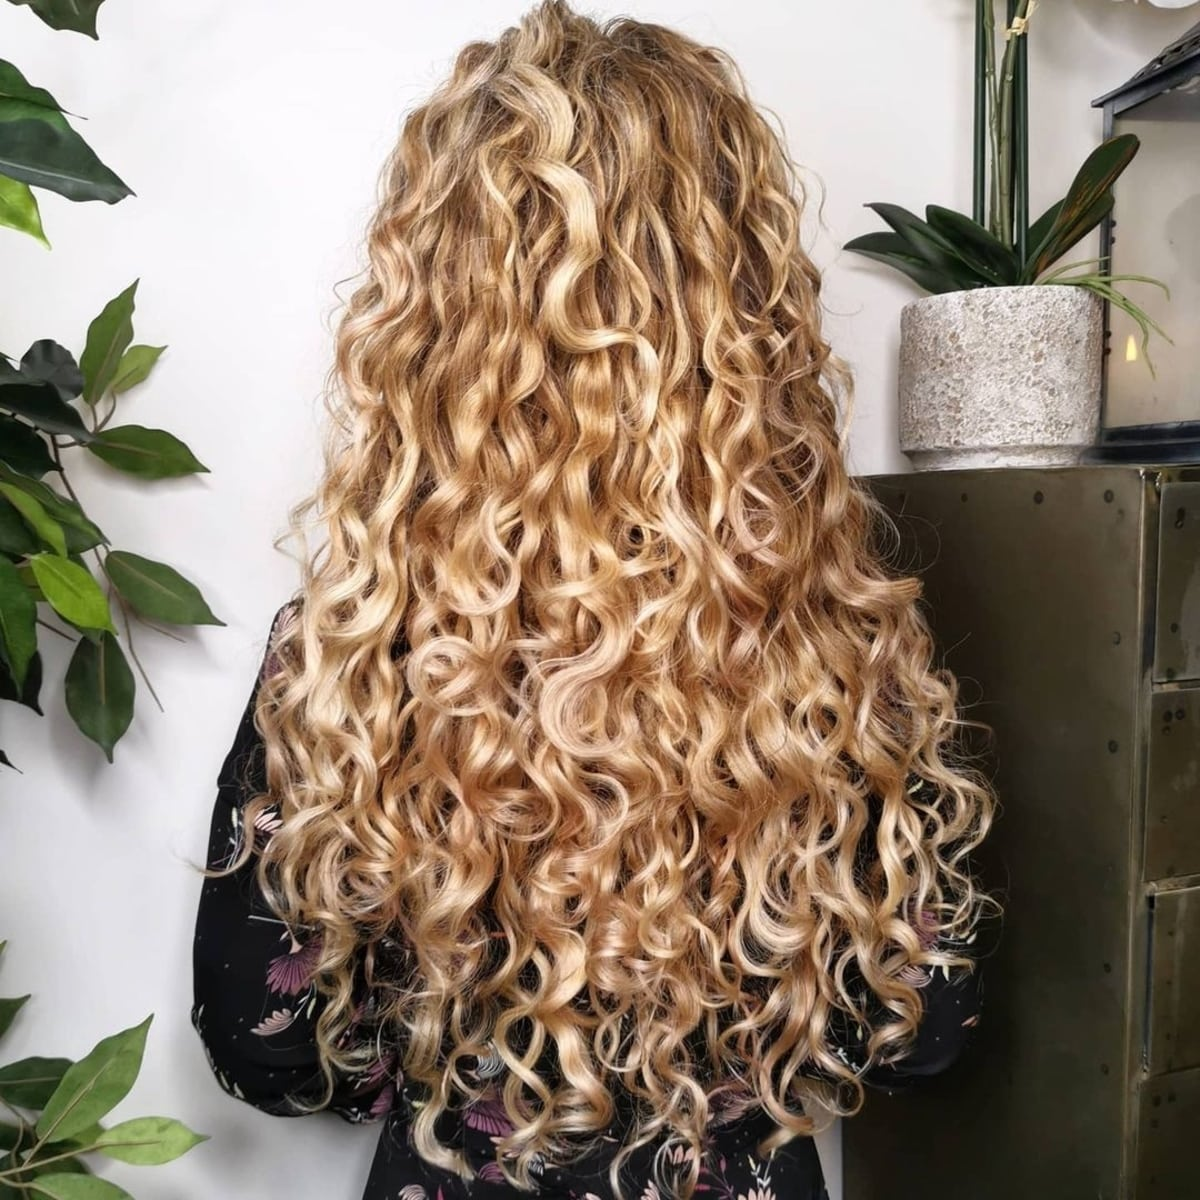 28 Cutest Long Curly Hairstyles